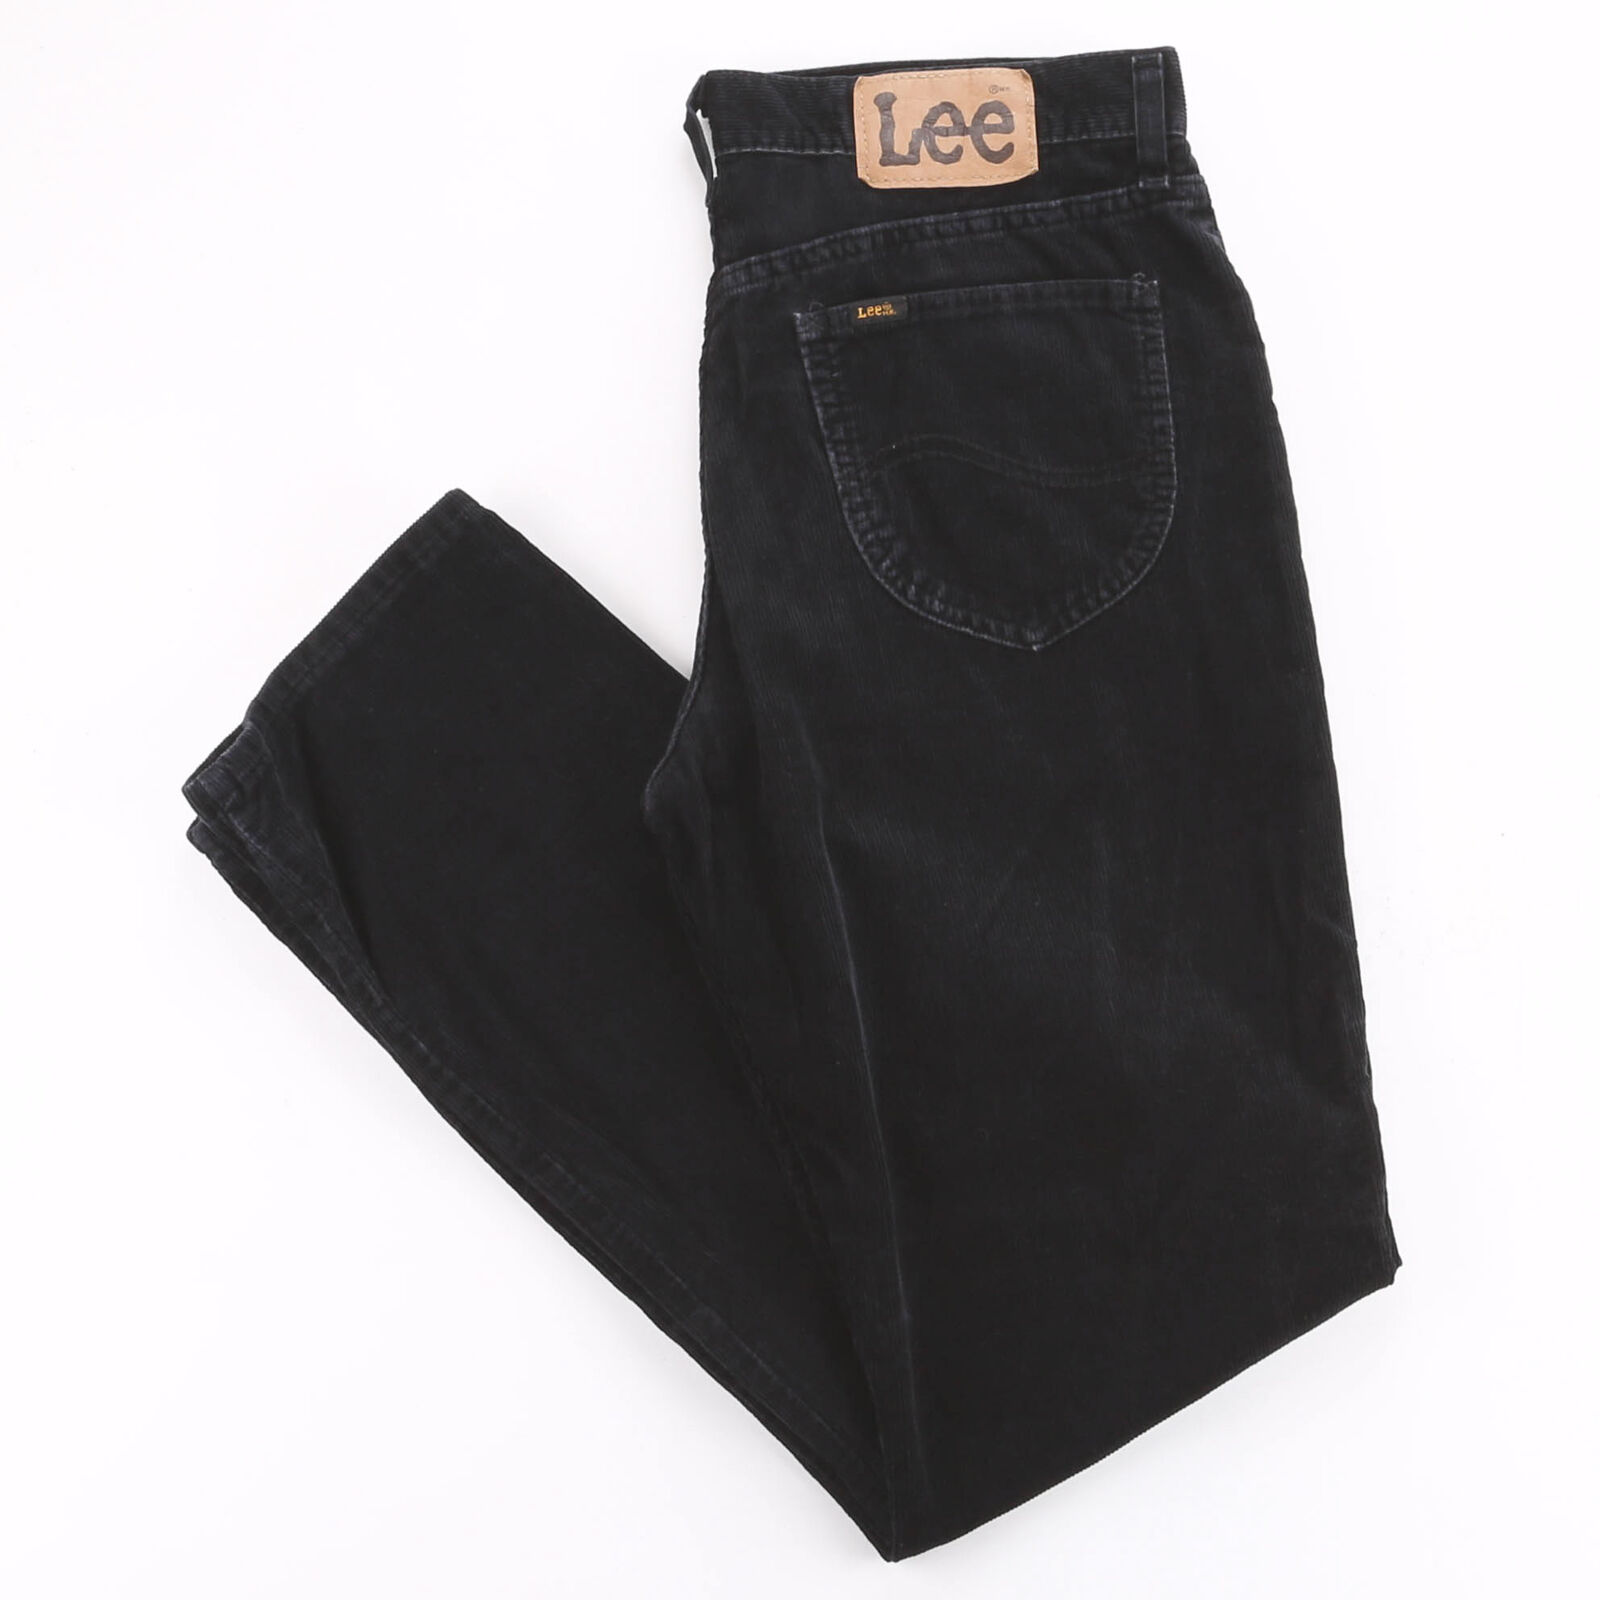 Vintage LEE Black Corduroy Relaxed Straight Trousers Mens W33 L32